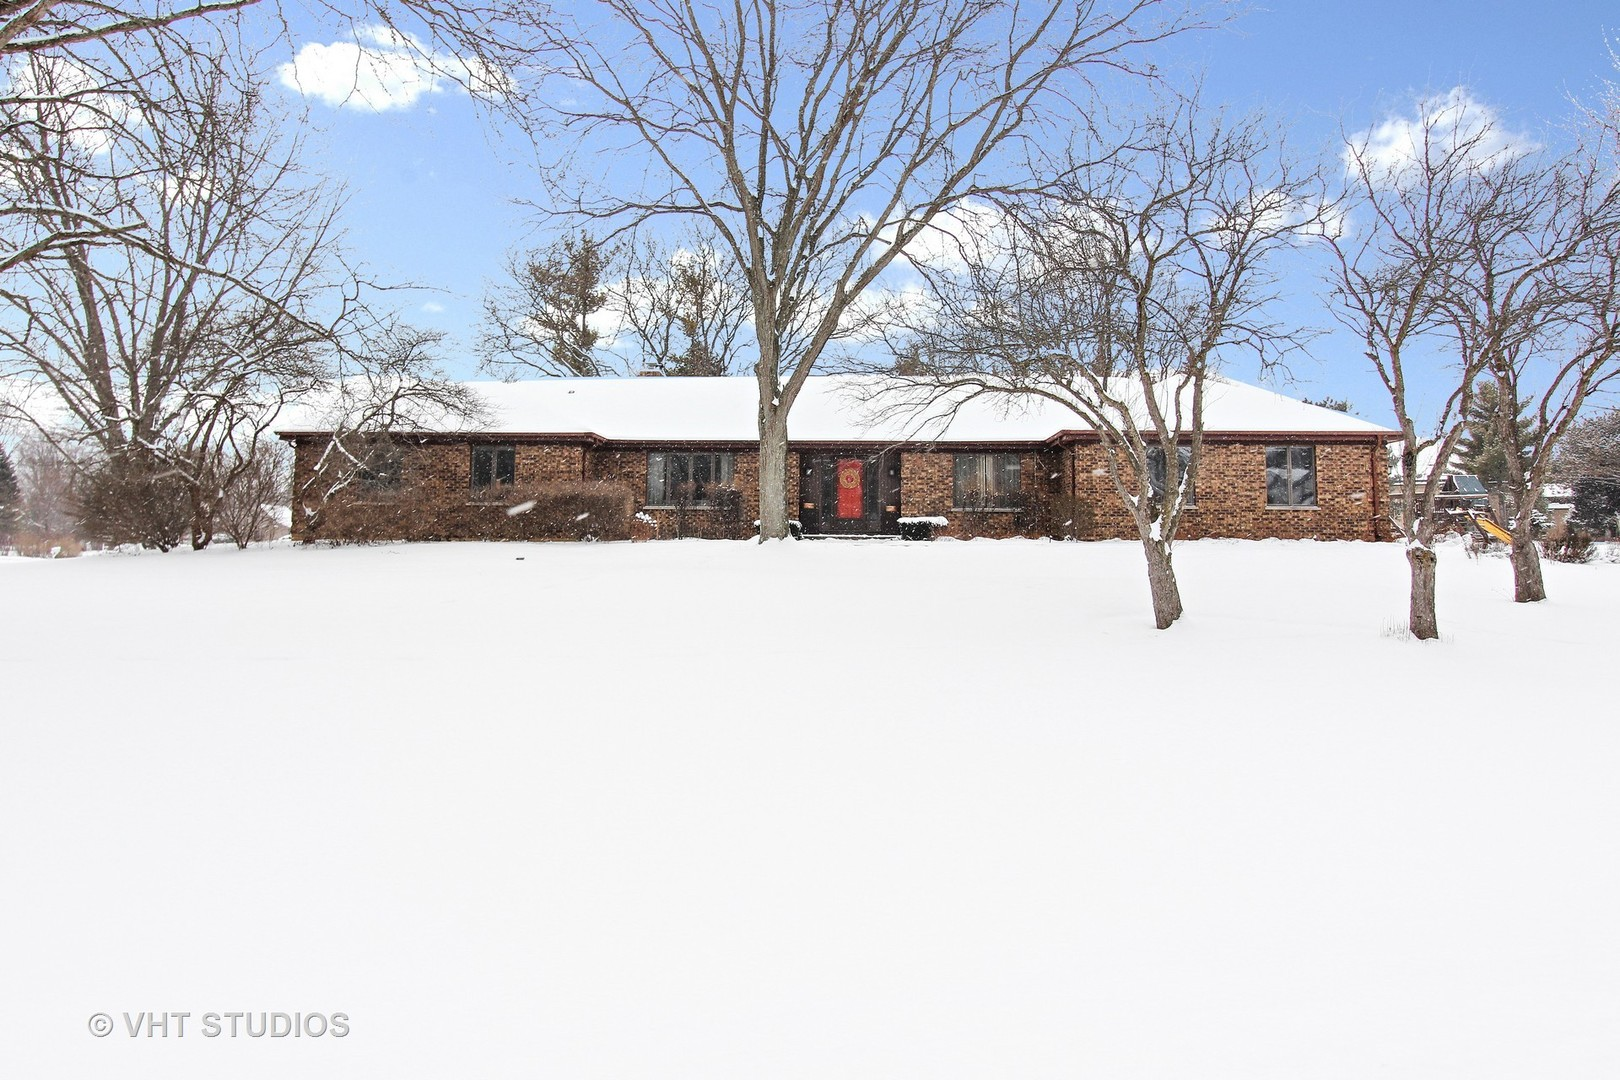 12 Juel Dr, Hawthorn Woods, IL 60047 - MLS 09851178 - Coldwell Banker